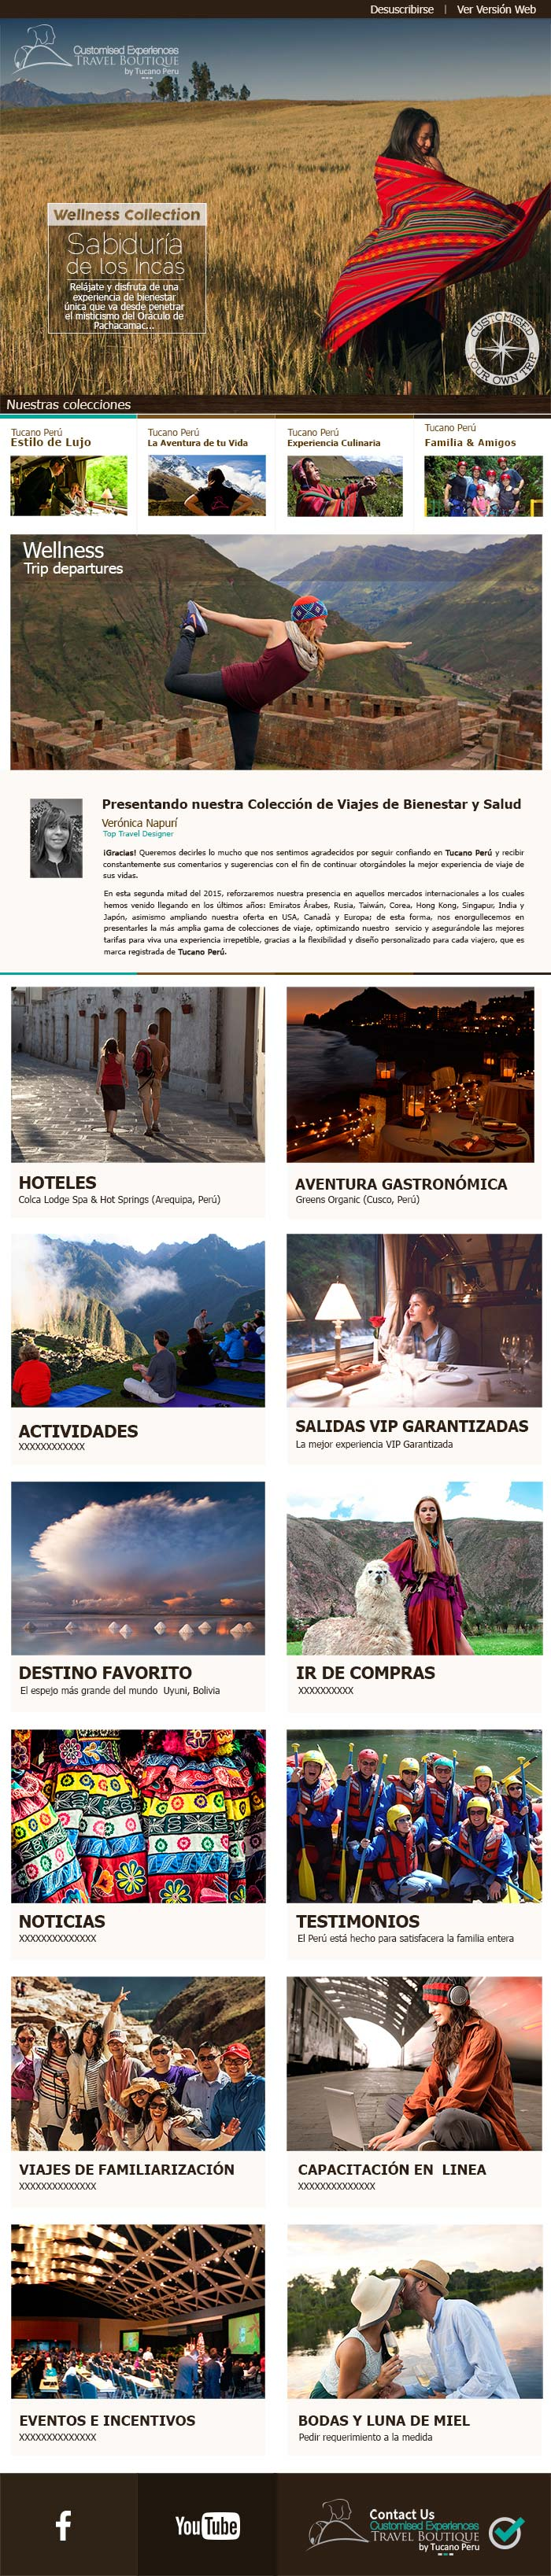 A custom email template design for Tucano Peru